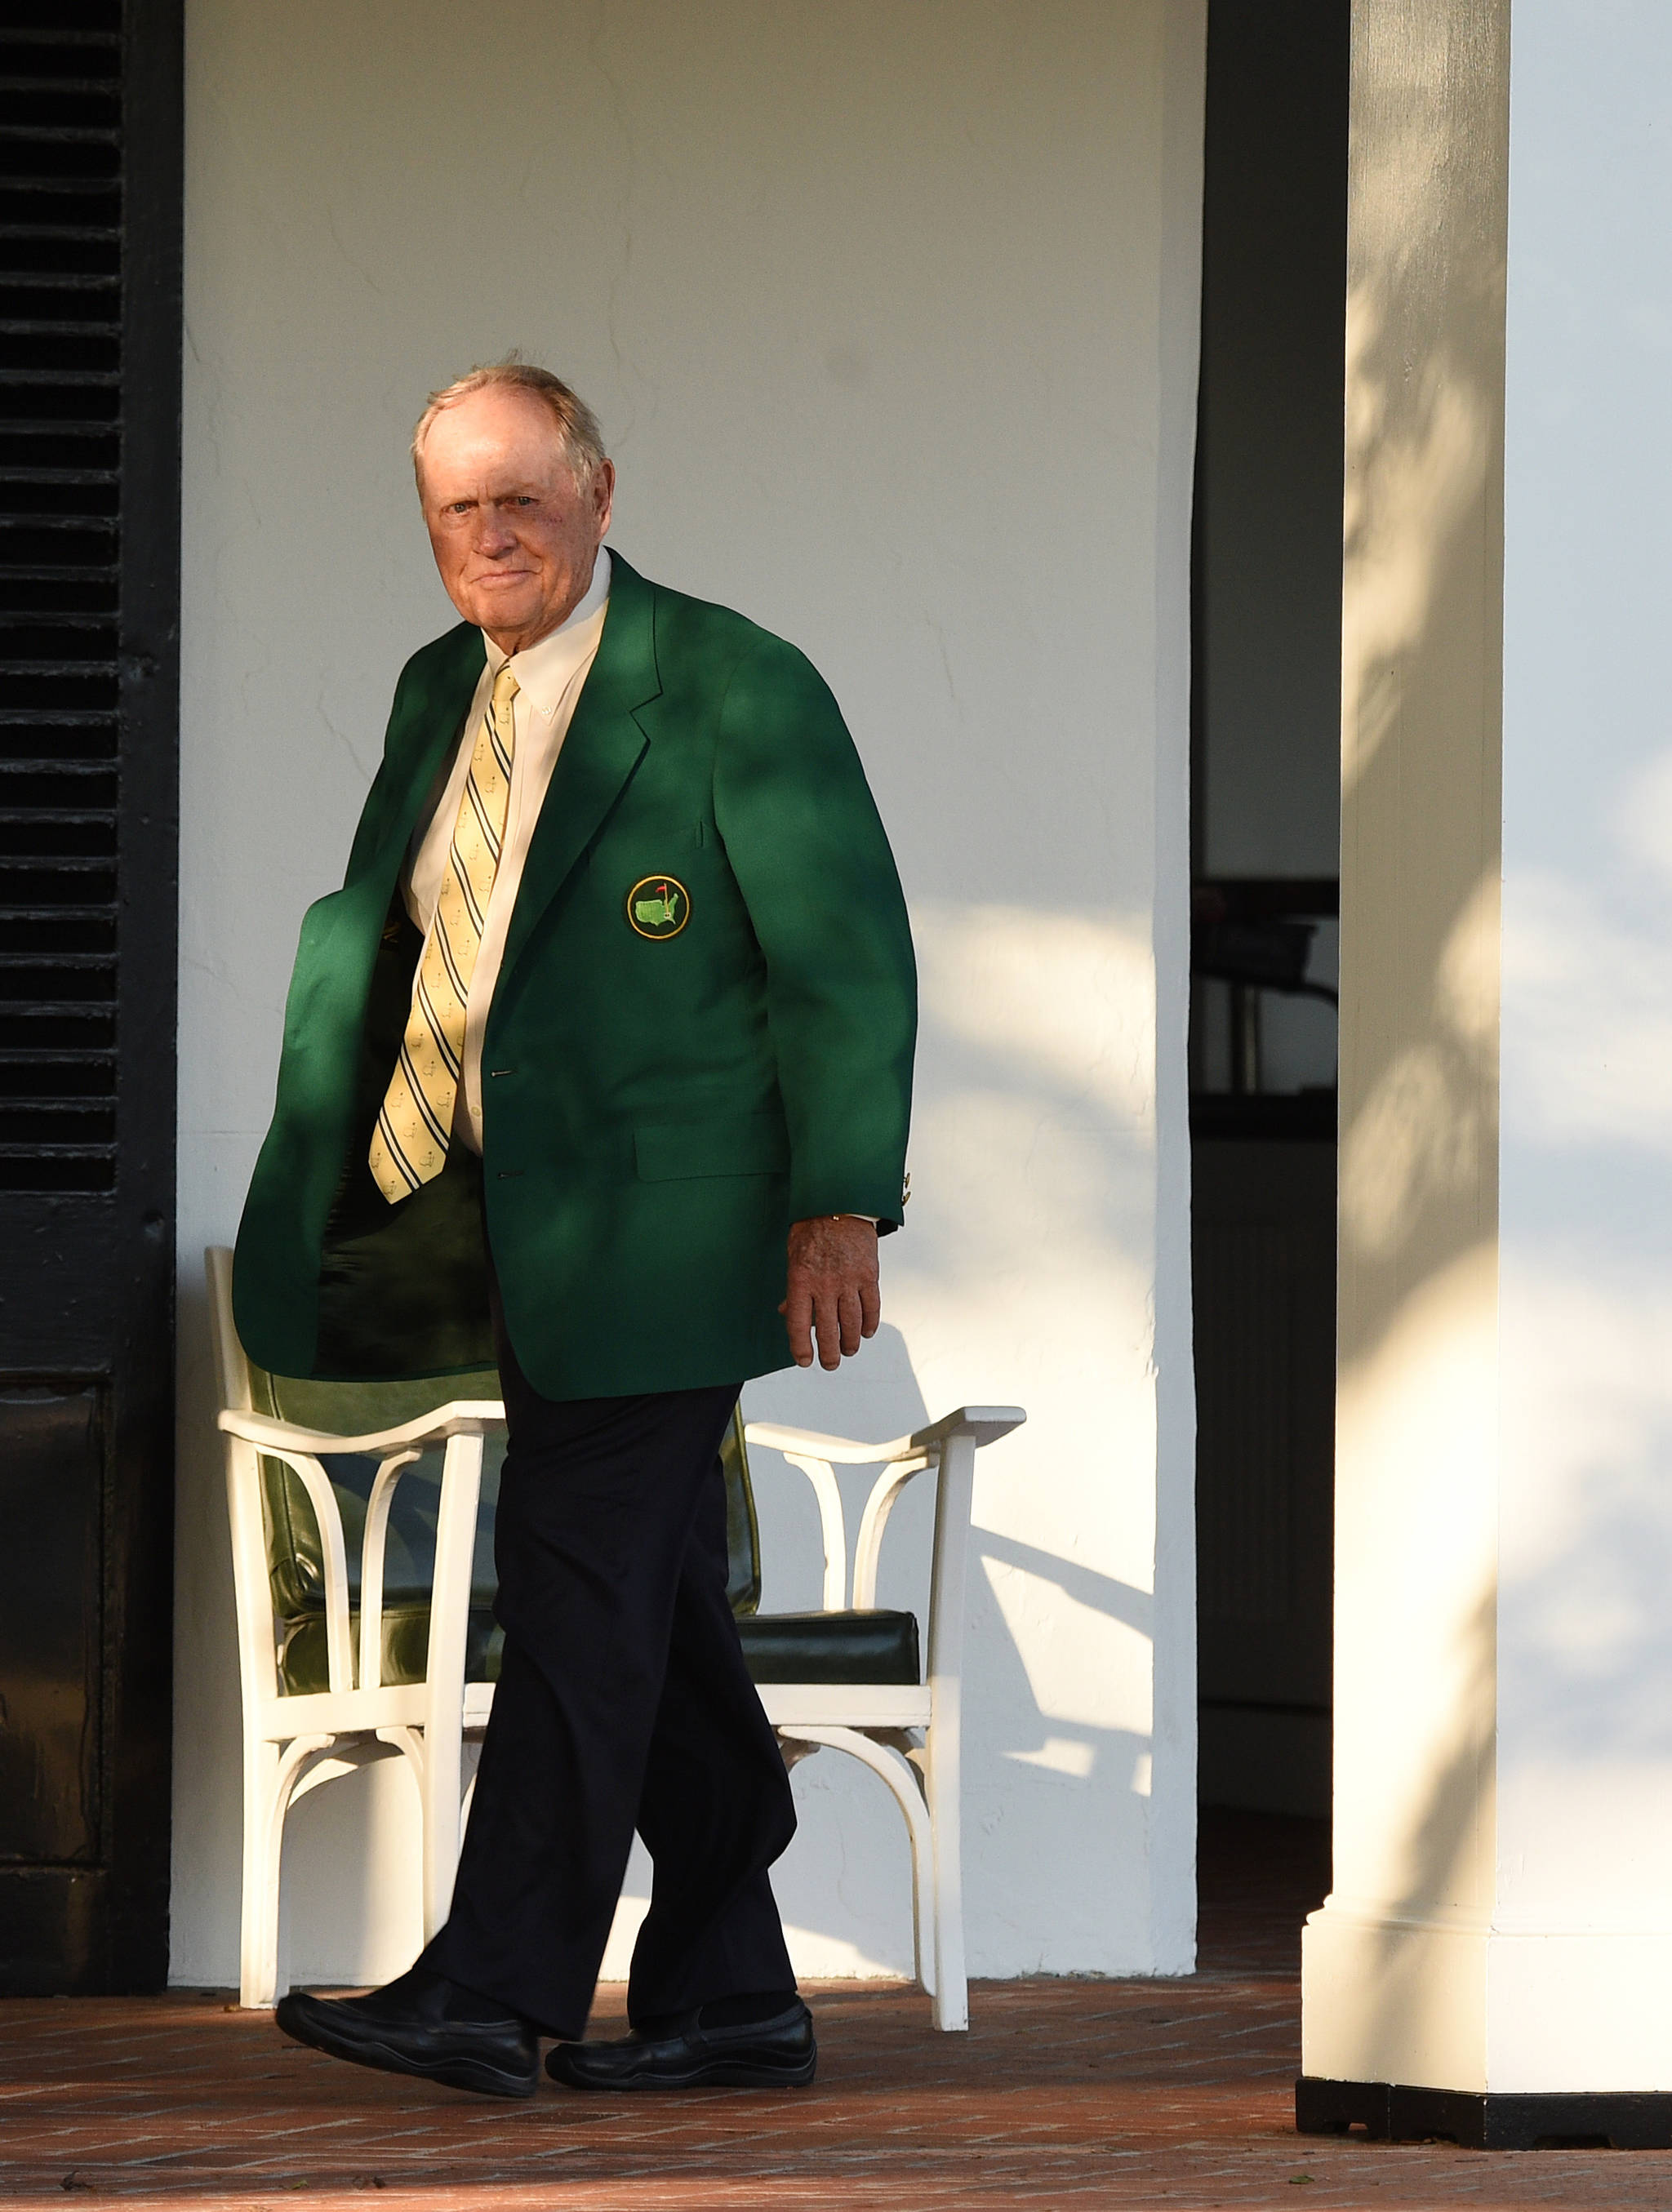 Nicklaus, Palmer were friendly rivals